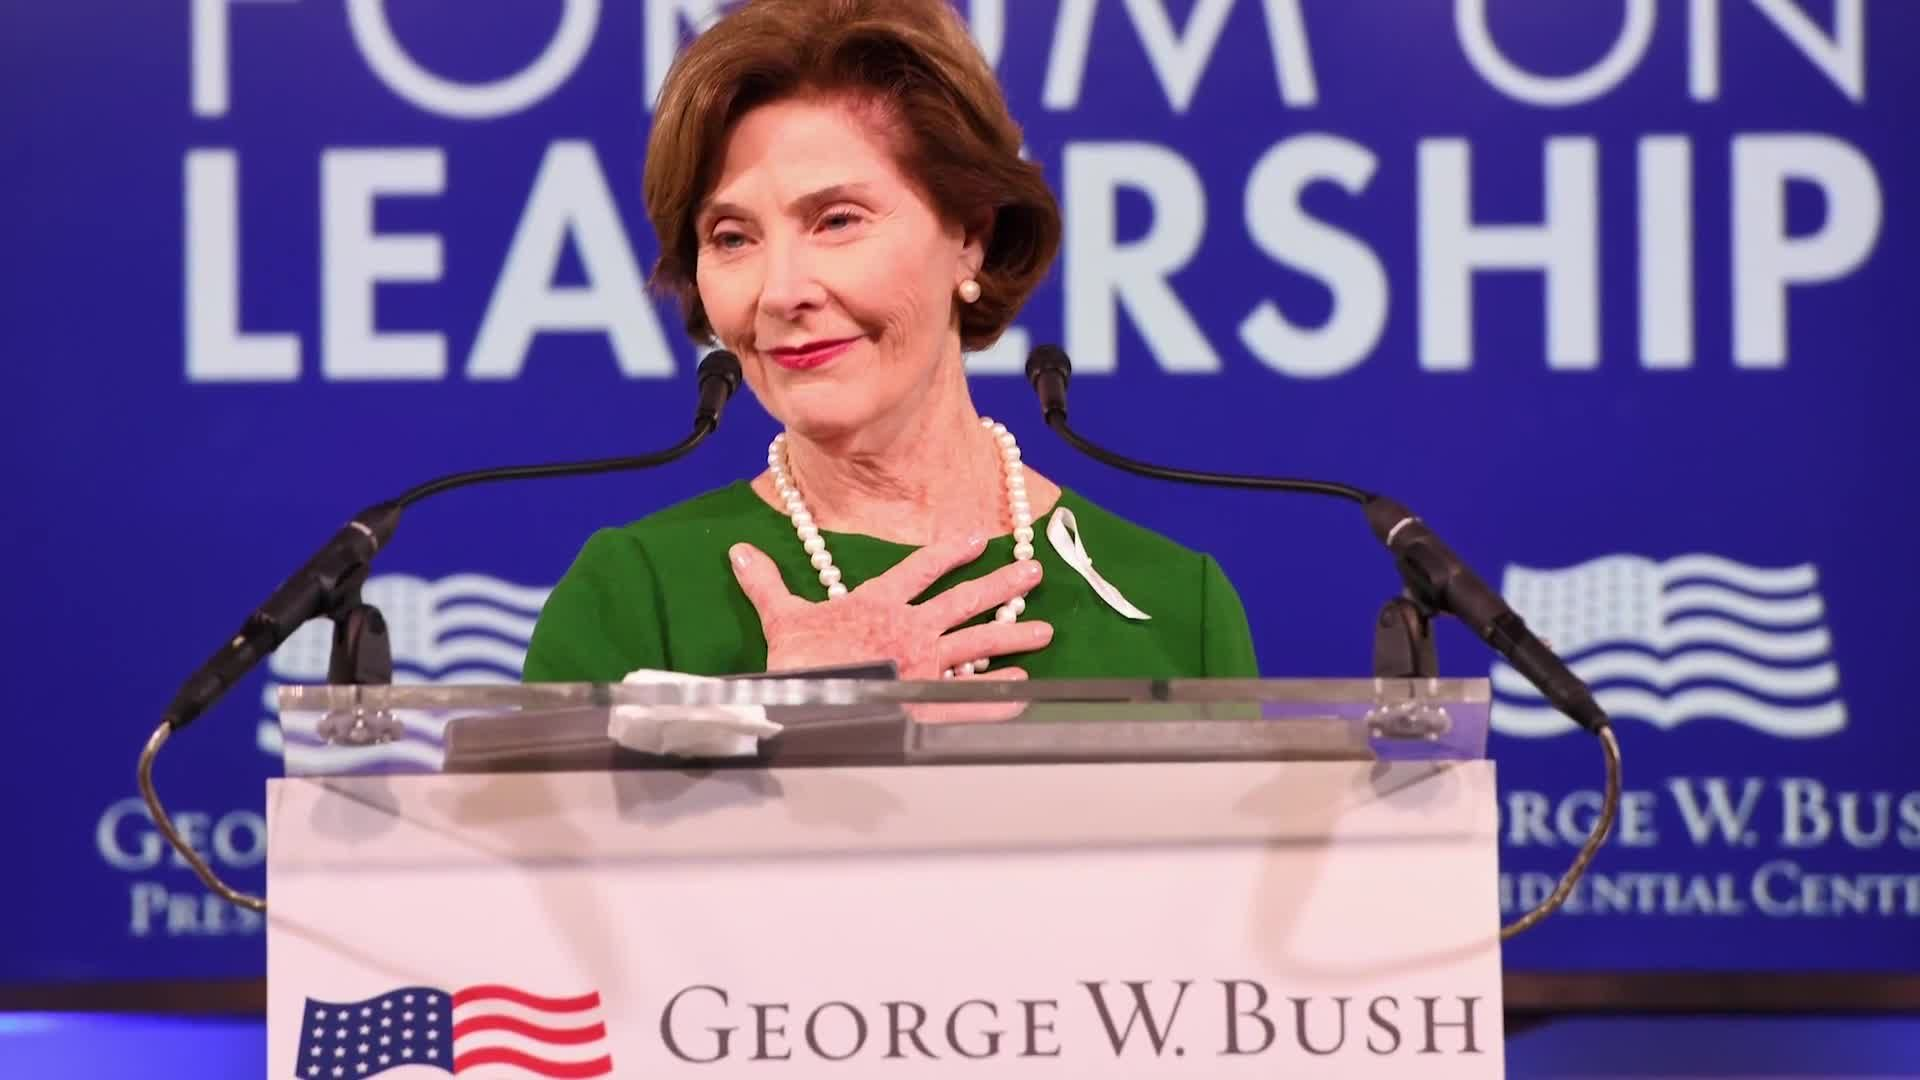 Laura Bush: A Champion of Literacy